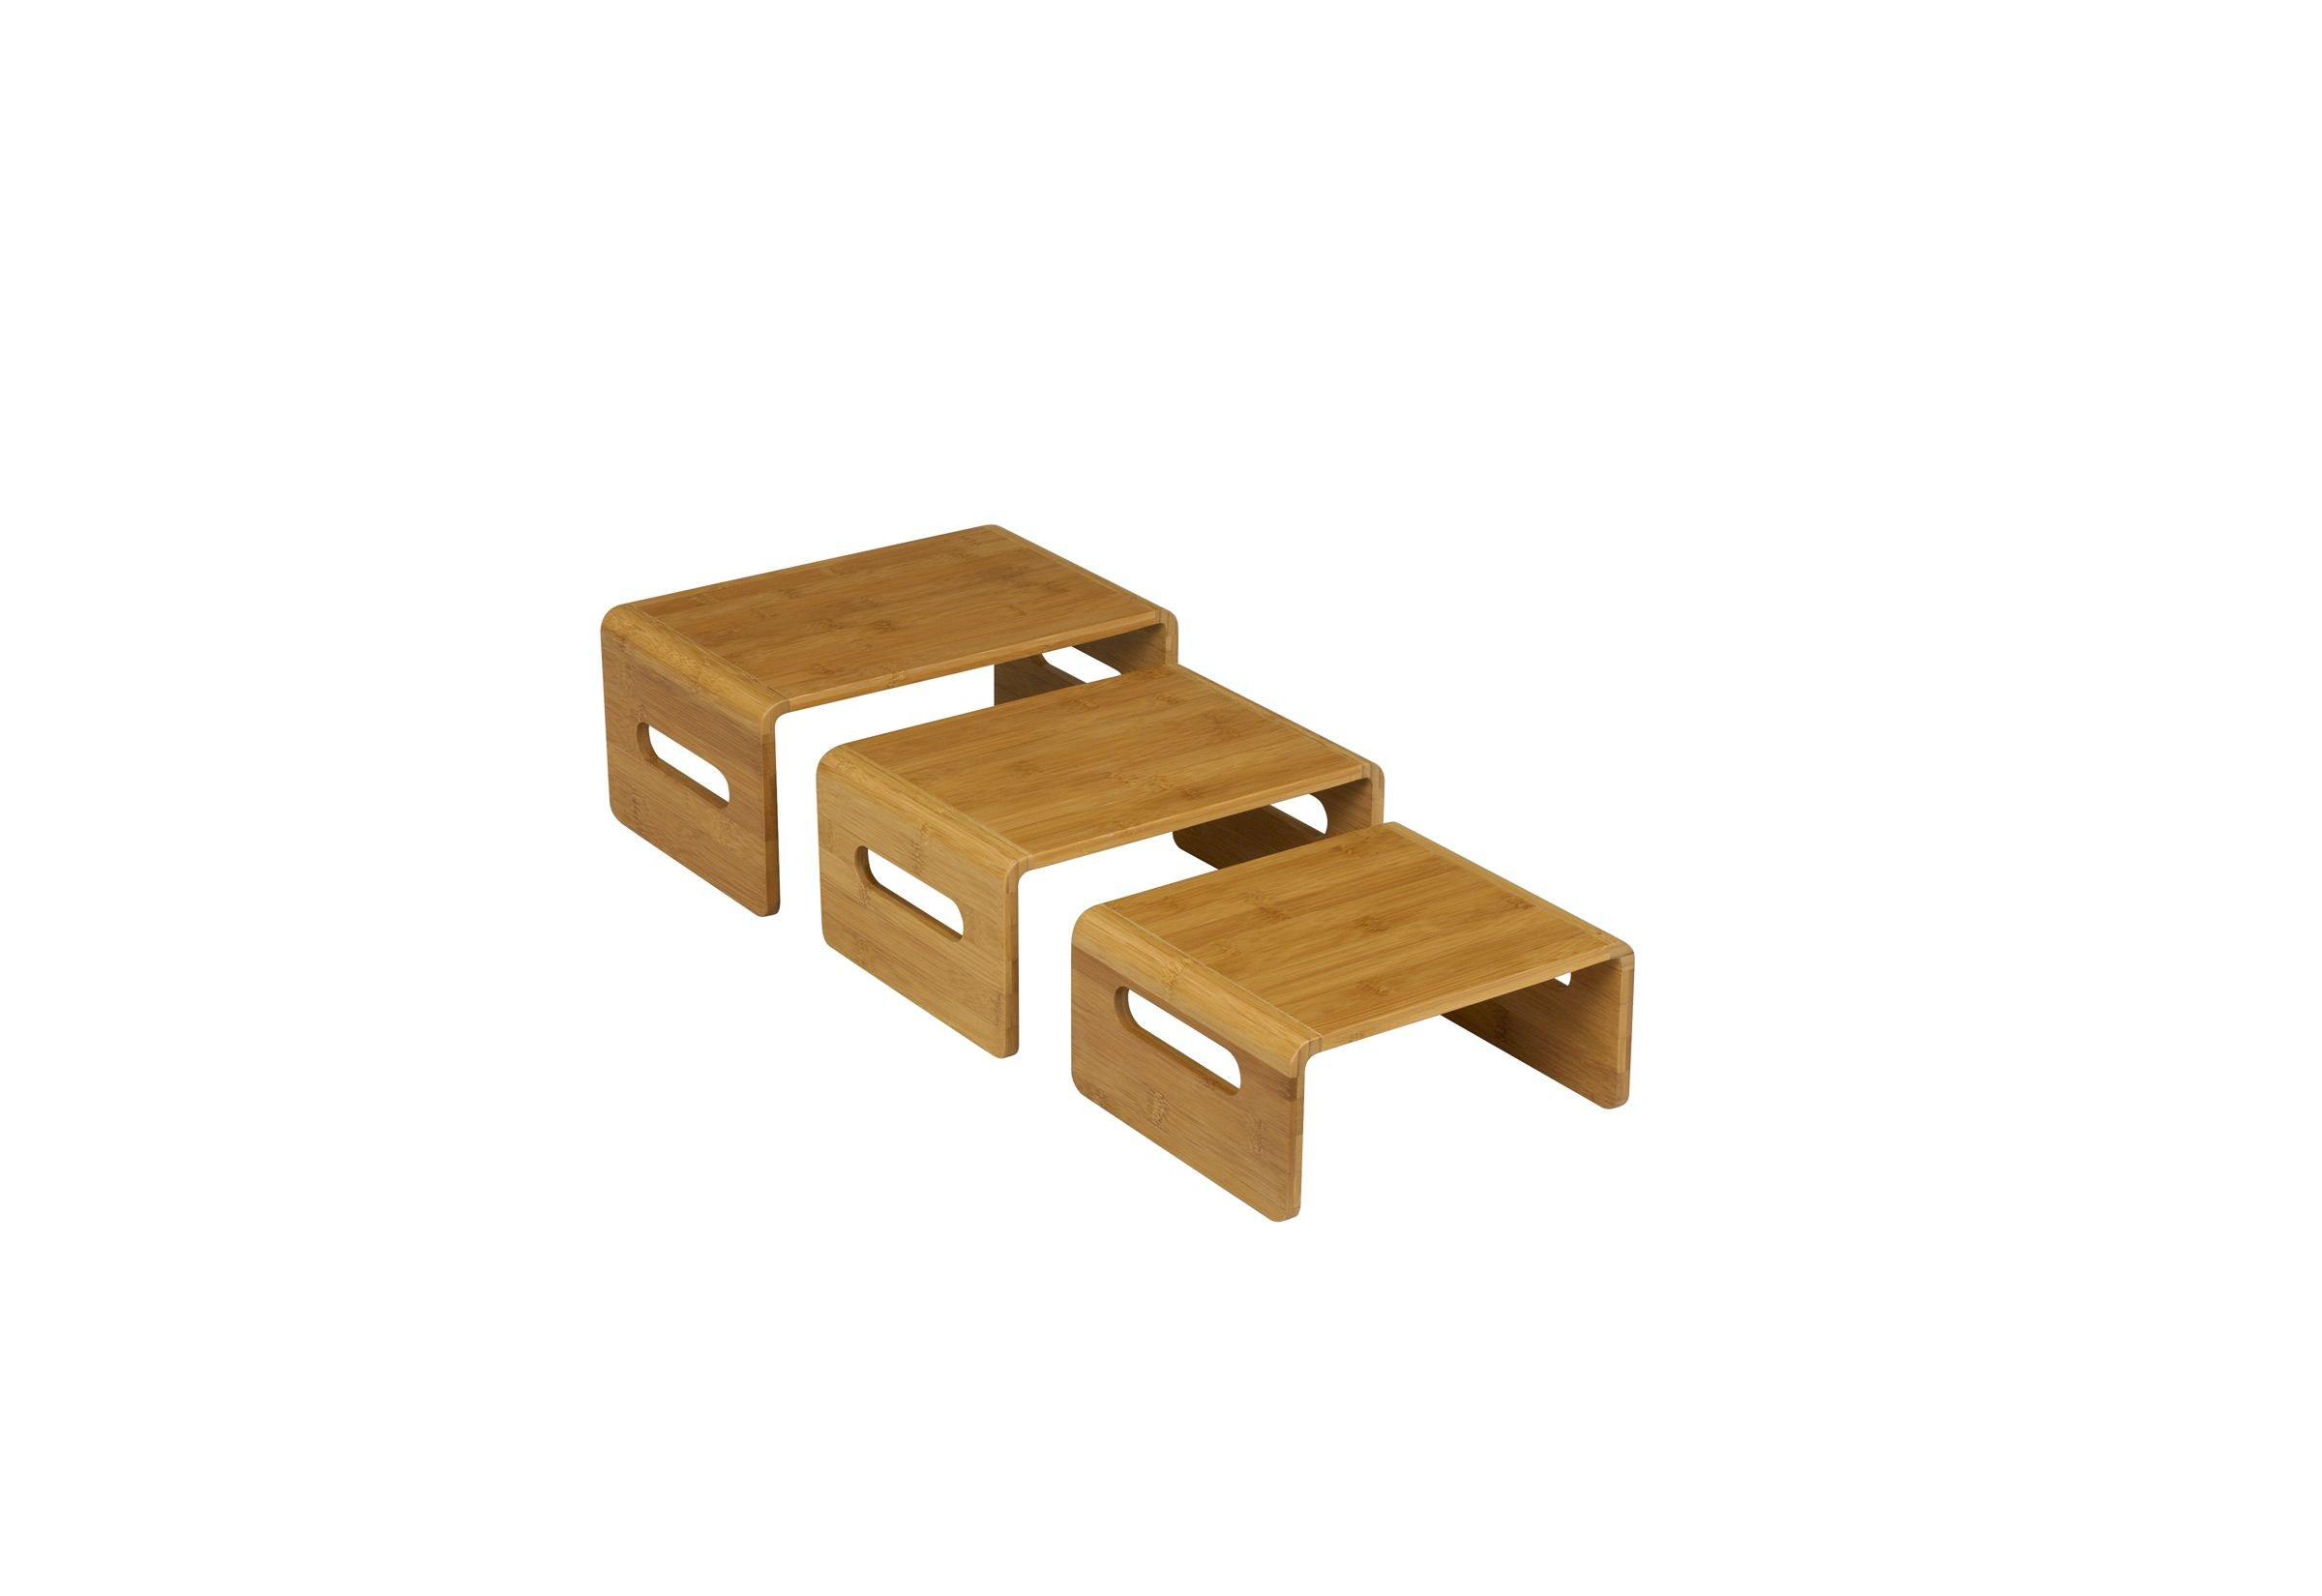 Rectangular Riser Bamboo Natural Finish 3 Piece Set- 11